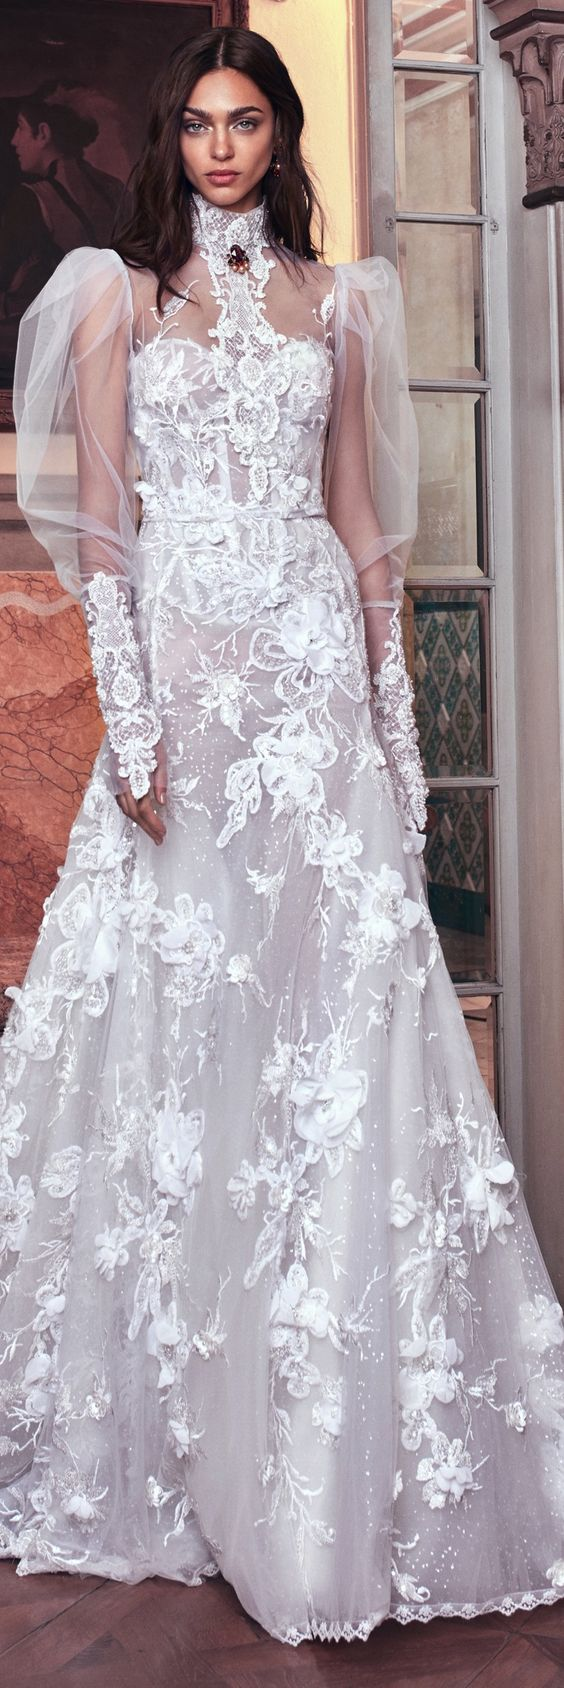 2019 Bridal Trends: Puff Sleeves and Wedding Shoes